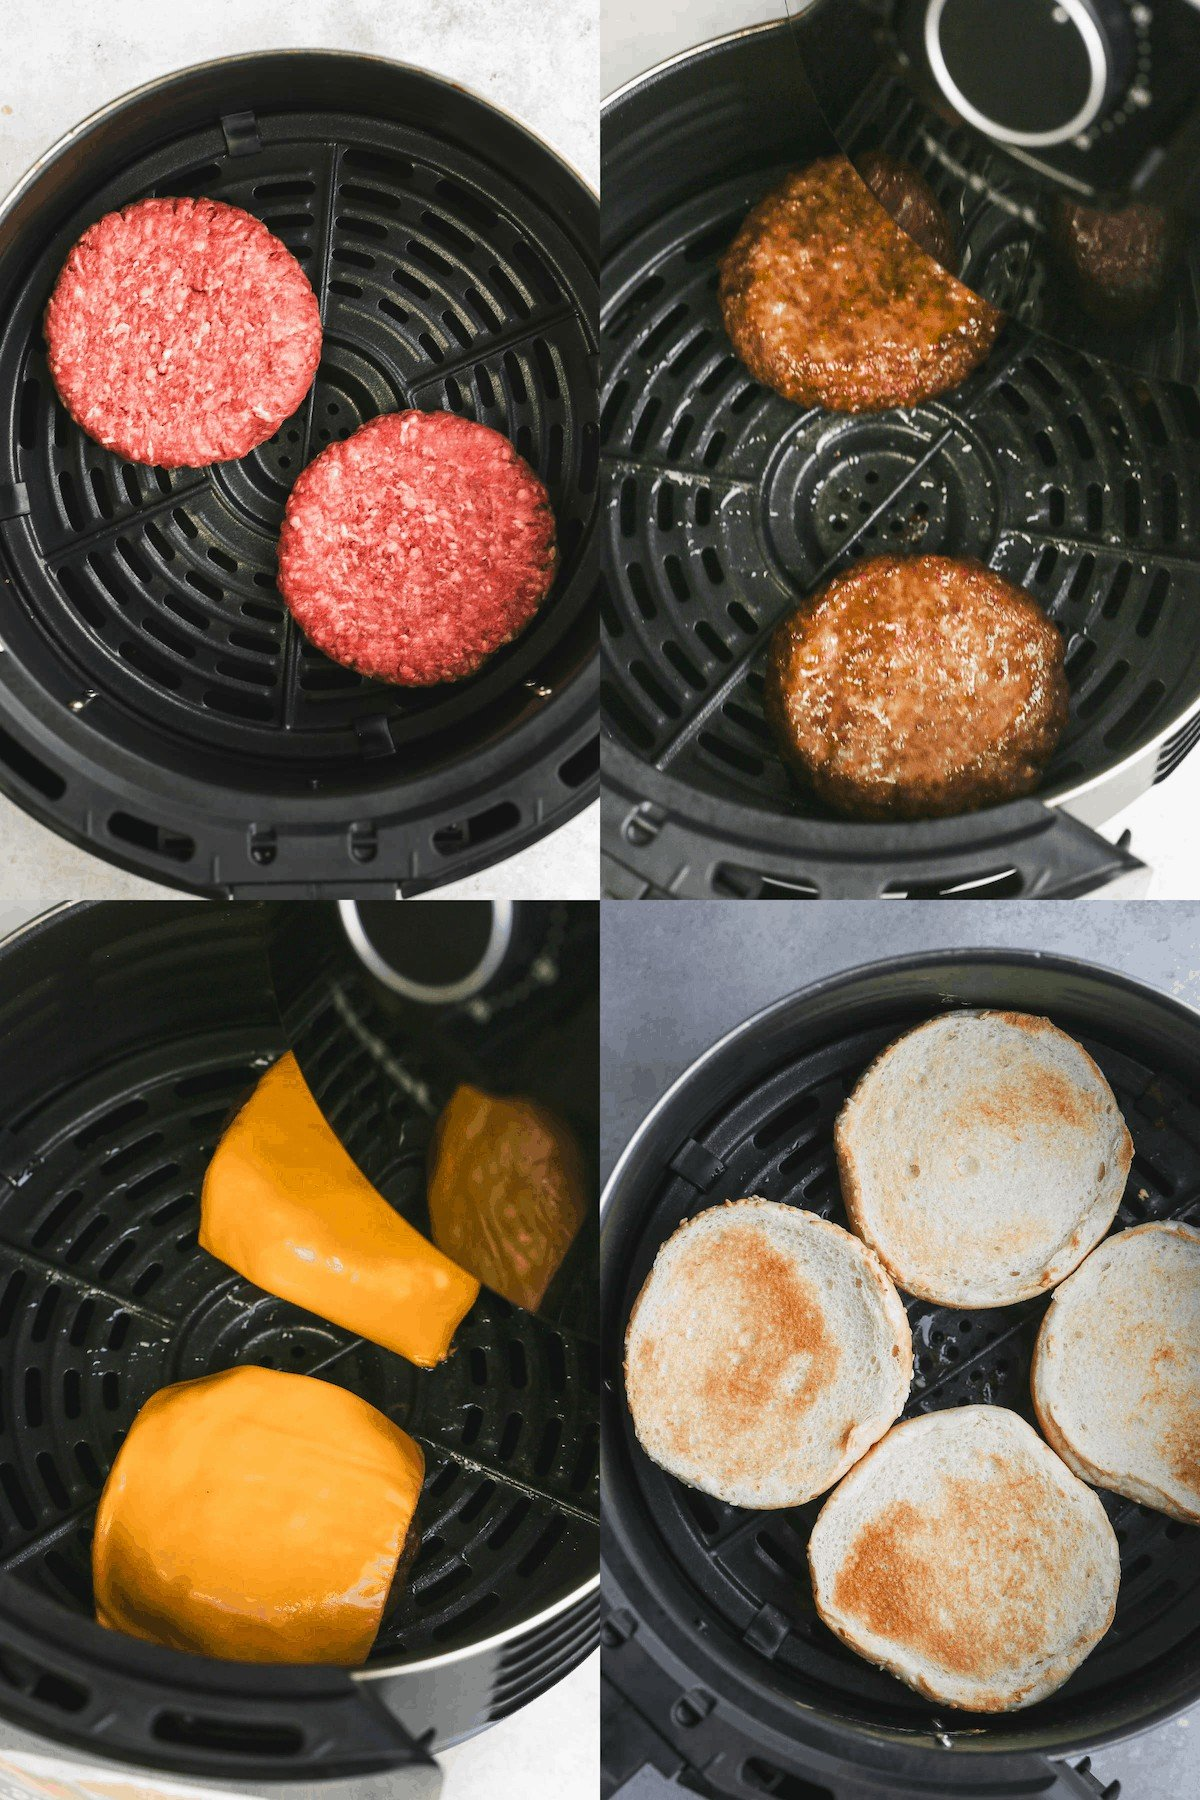 Steps of making hamburgers in an air fryer; including air frying the meat patties, melting the cheese, and toasting the buns.